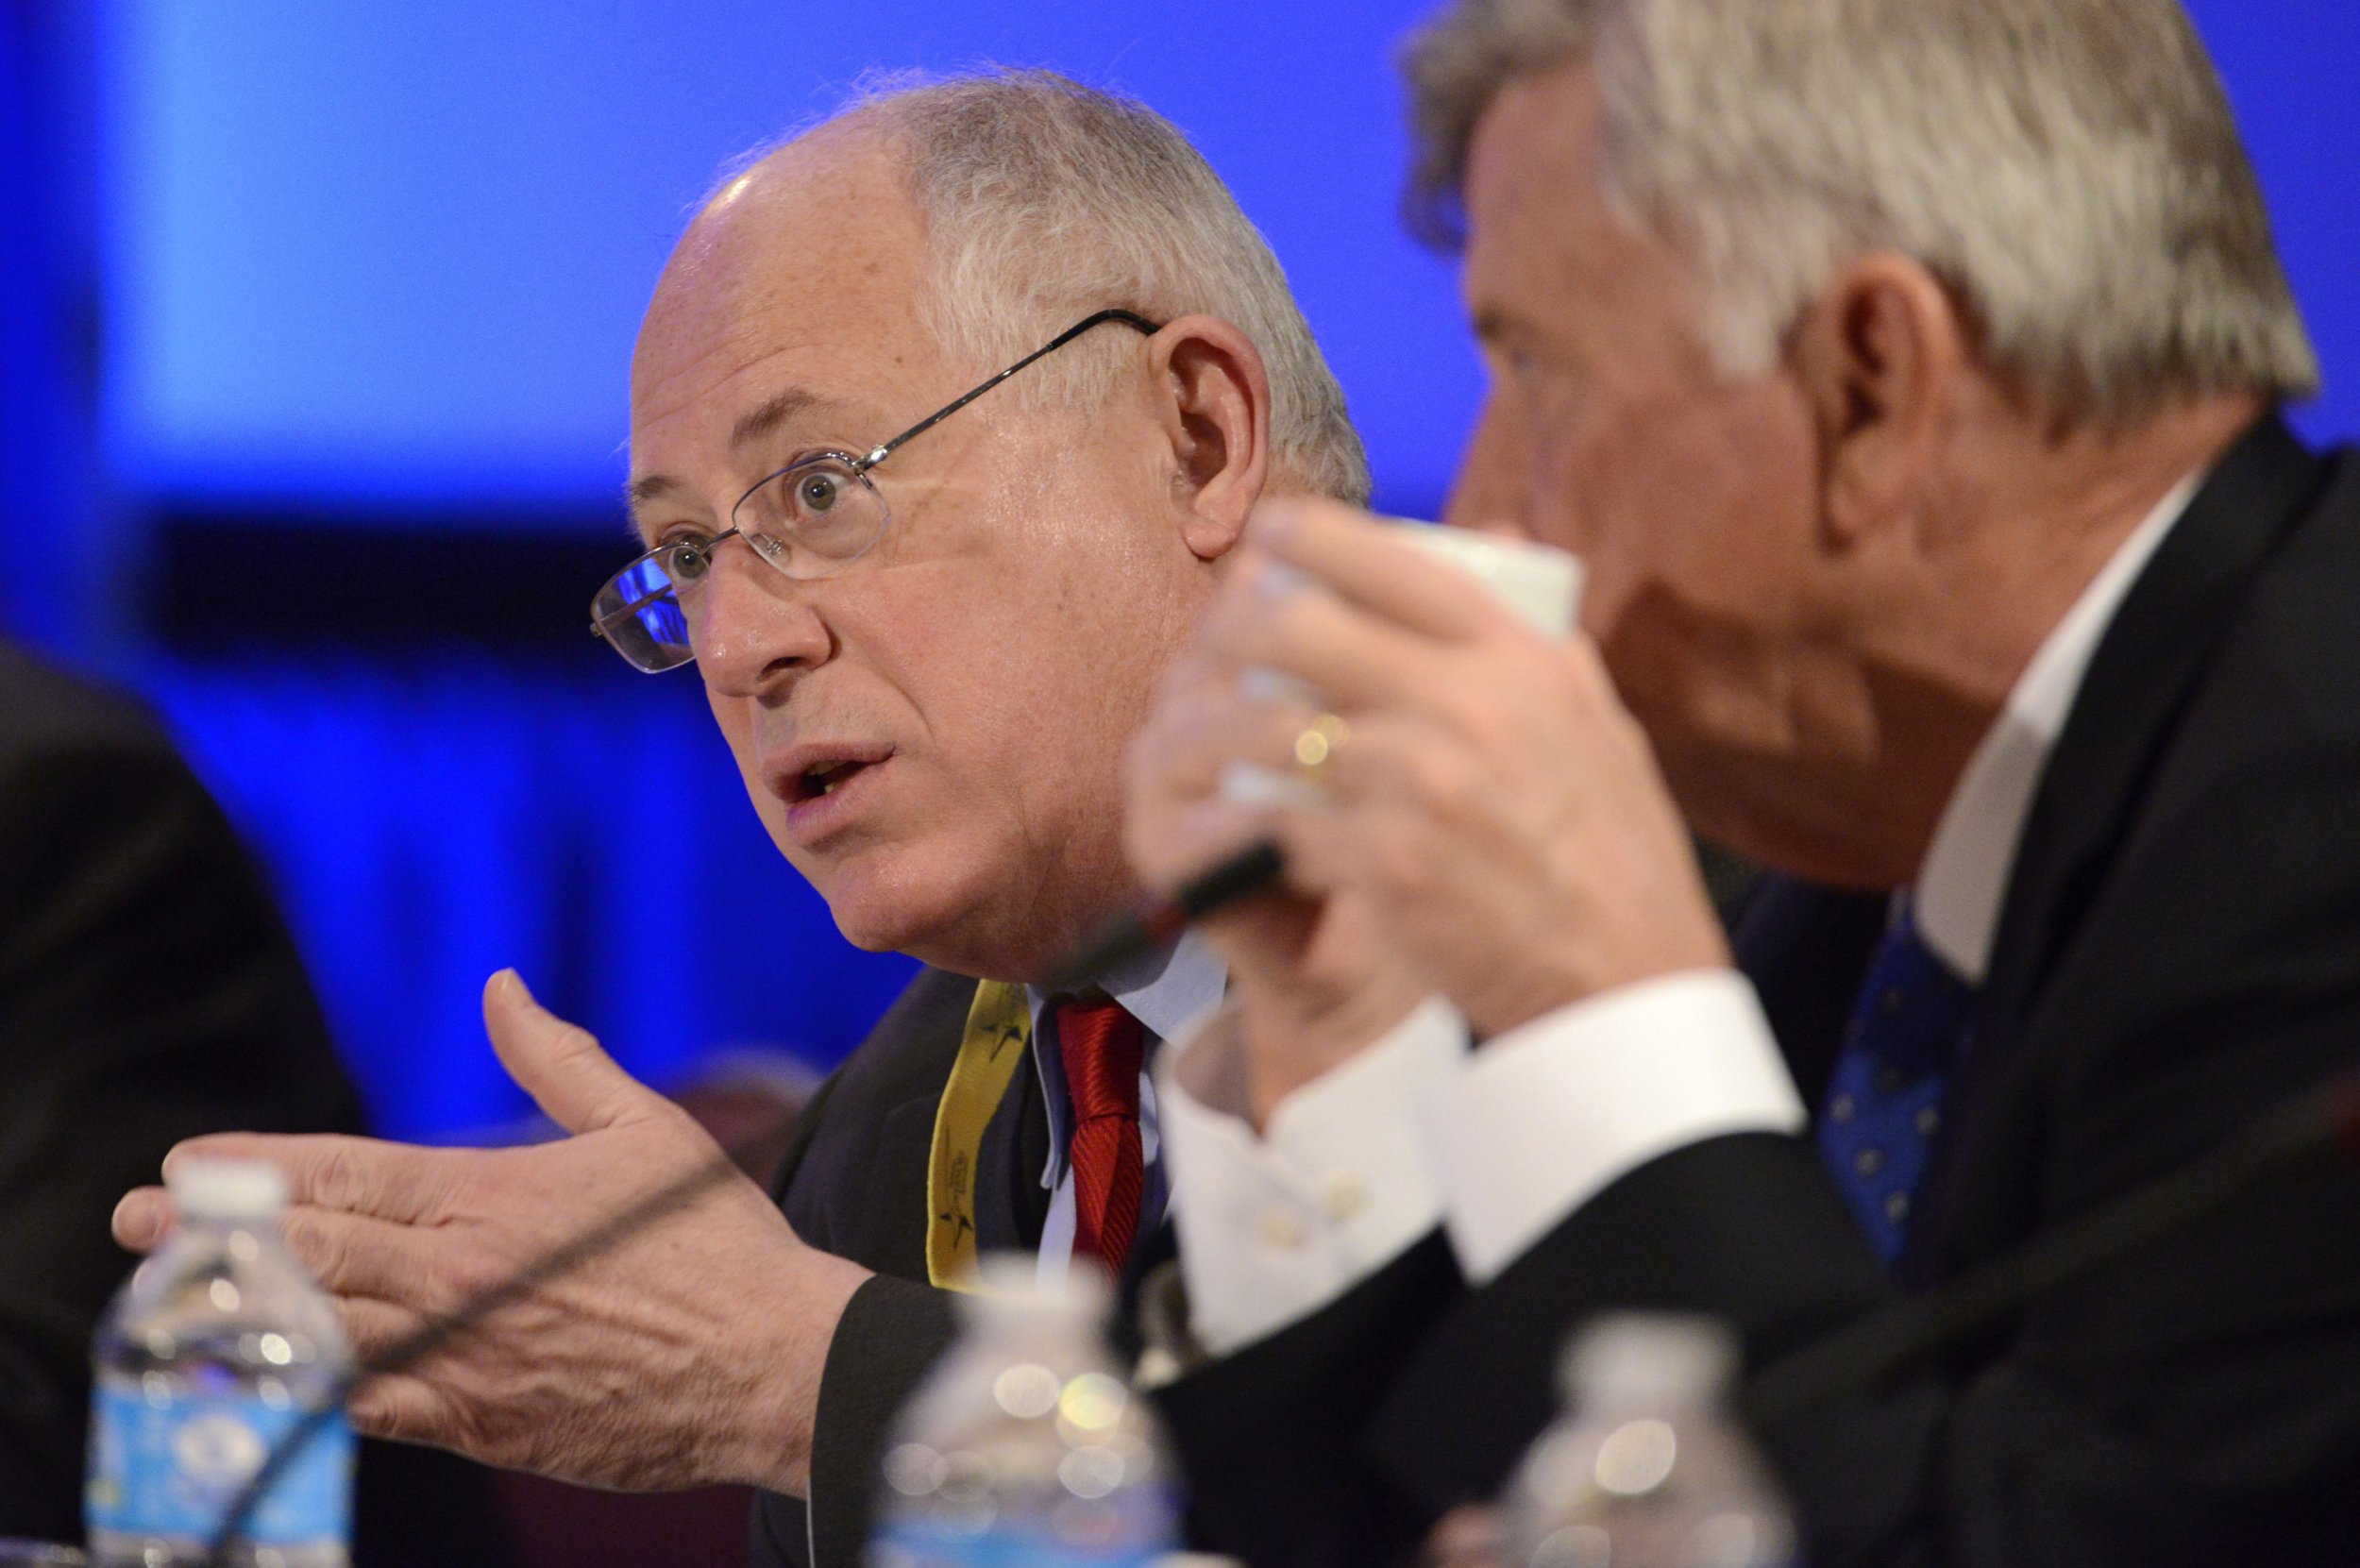 """Democratic Governor Pat Quinn of Illinois makes remarks during a """"Growth and Jobs in America"""" discussion at the National Governors Association Winter Meeting in Washington, February 23, 2014."""